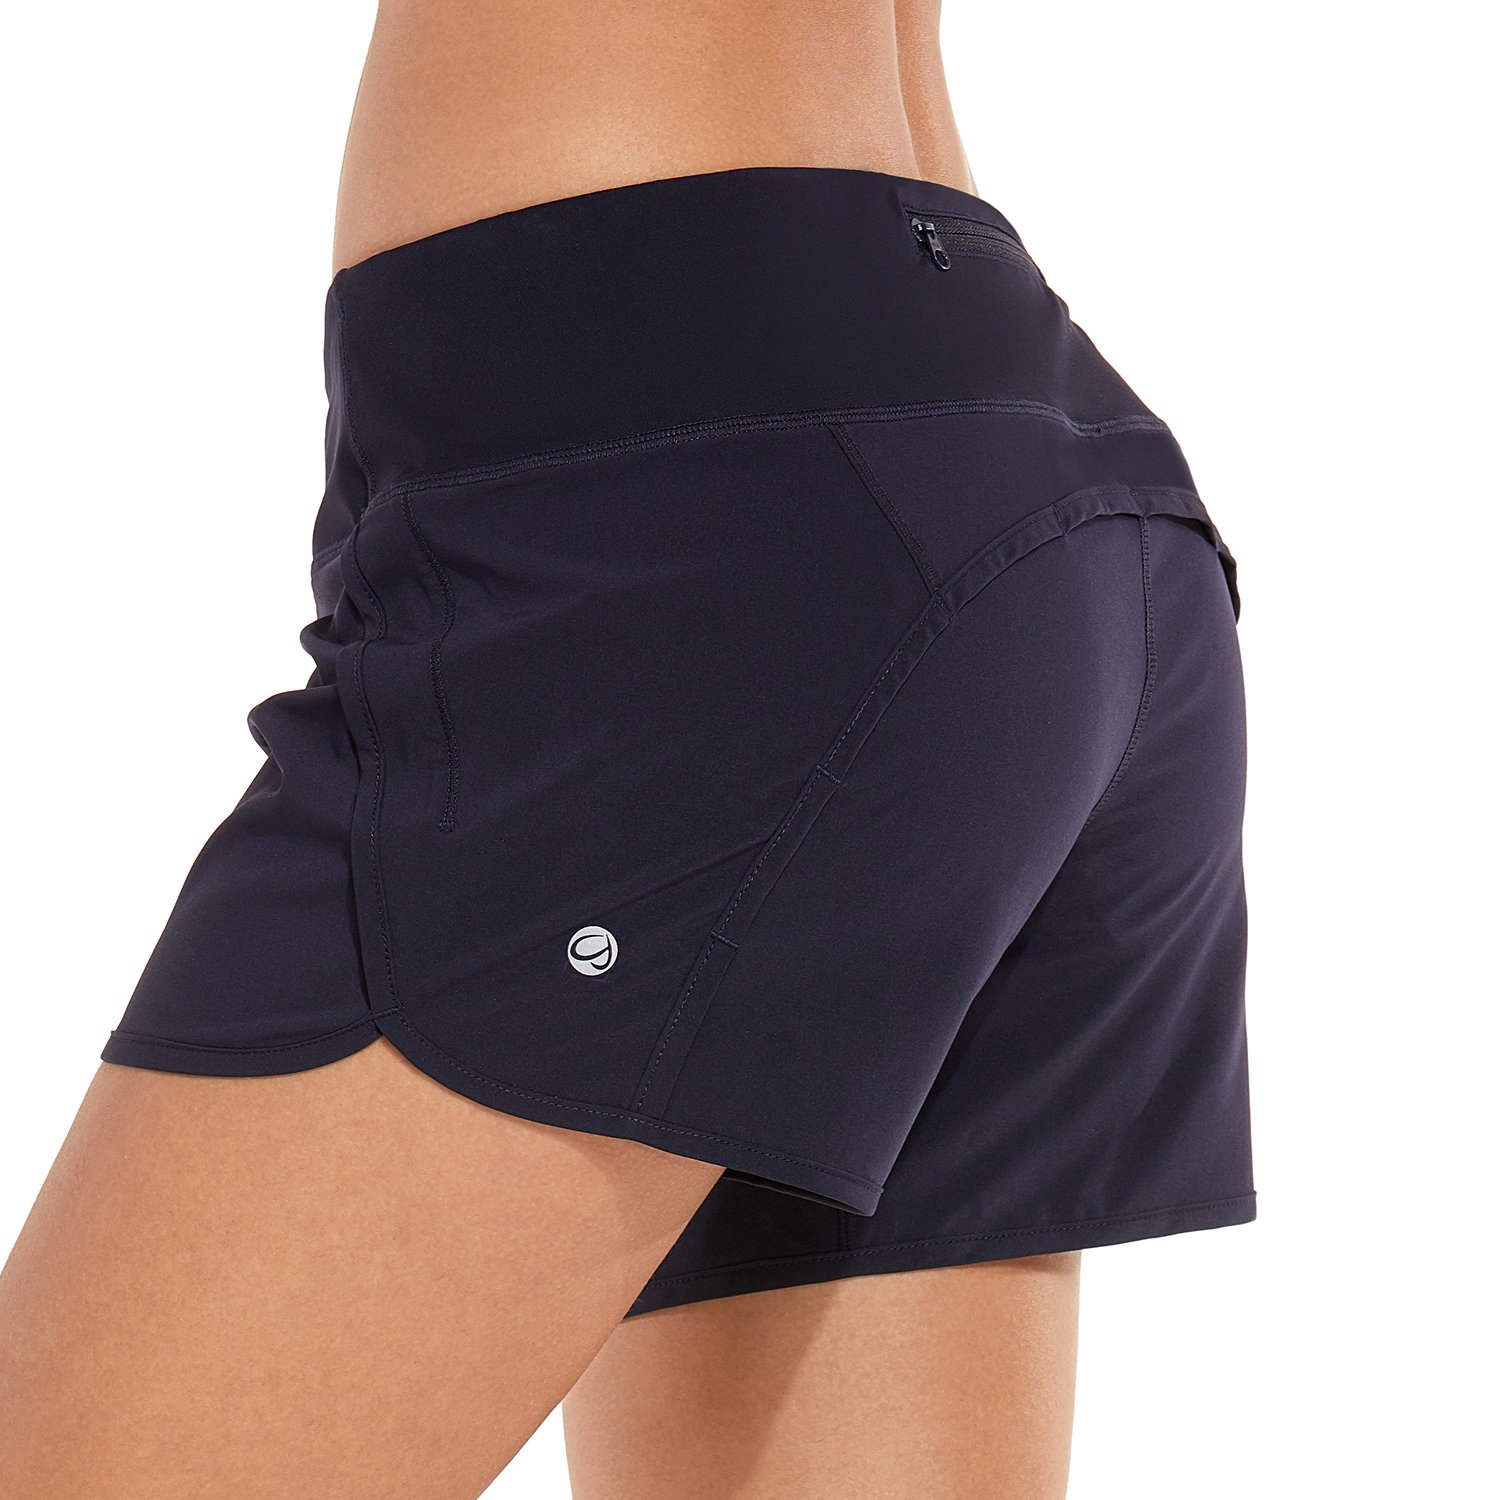 CRZ YOGA Women's Workout Sports Running Shorts Pants with Zip Pocket - 4 inch Navy 4''-R403 L(12)